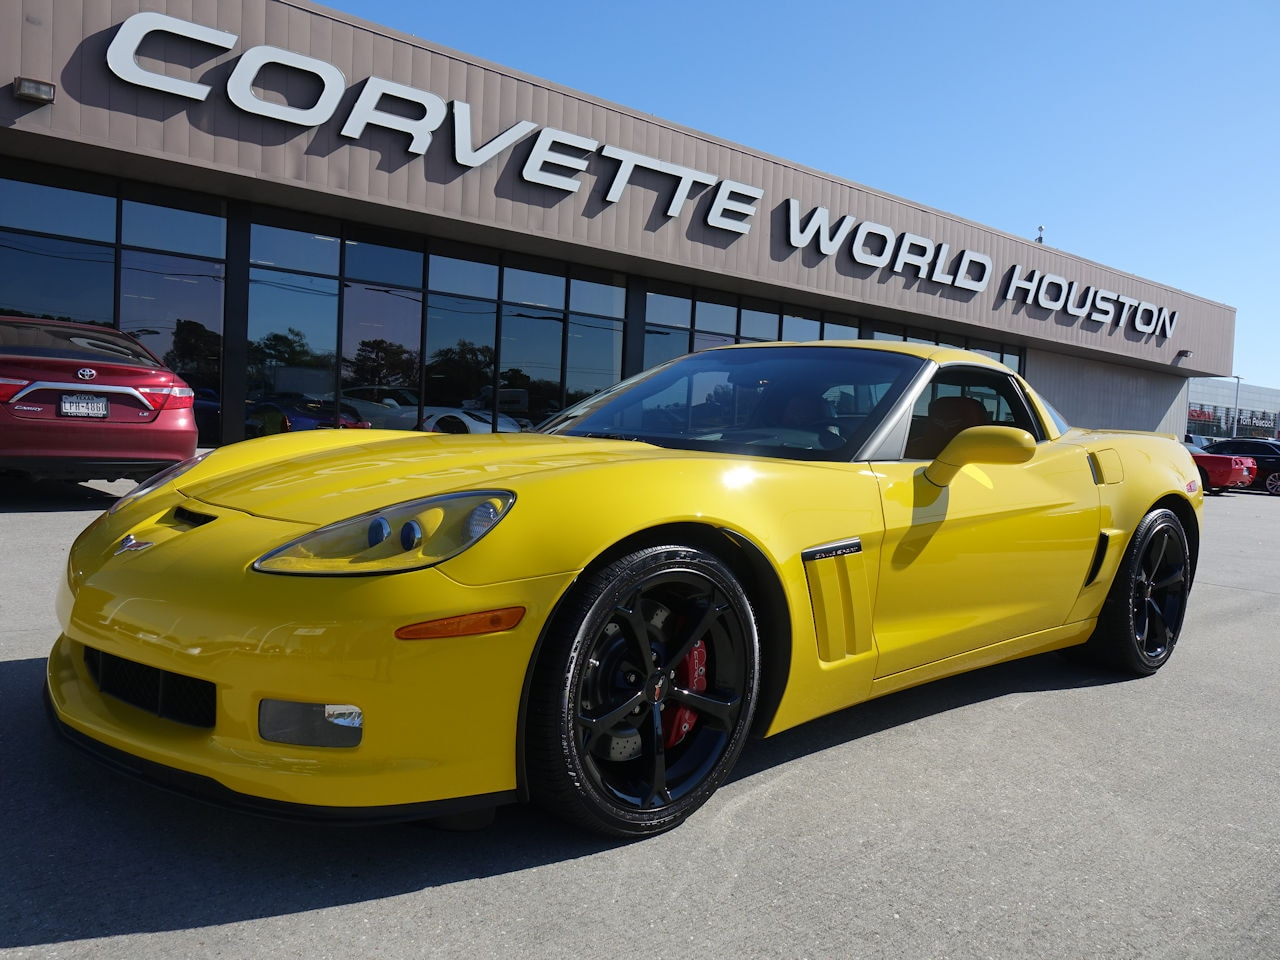 2013 Chevrolet Corvette Grand Sport Coupe 3LT Mag Ride Rare Color Combo Coupe